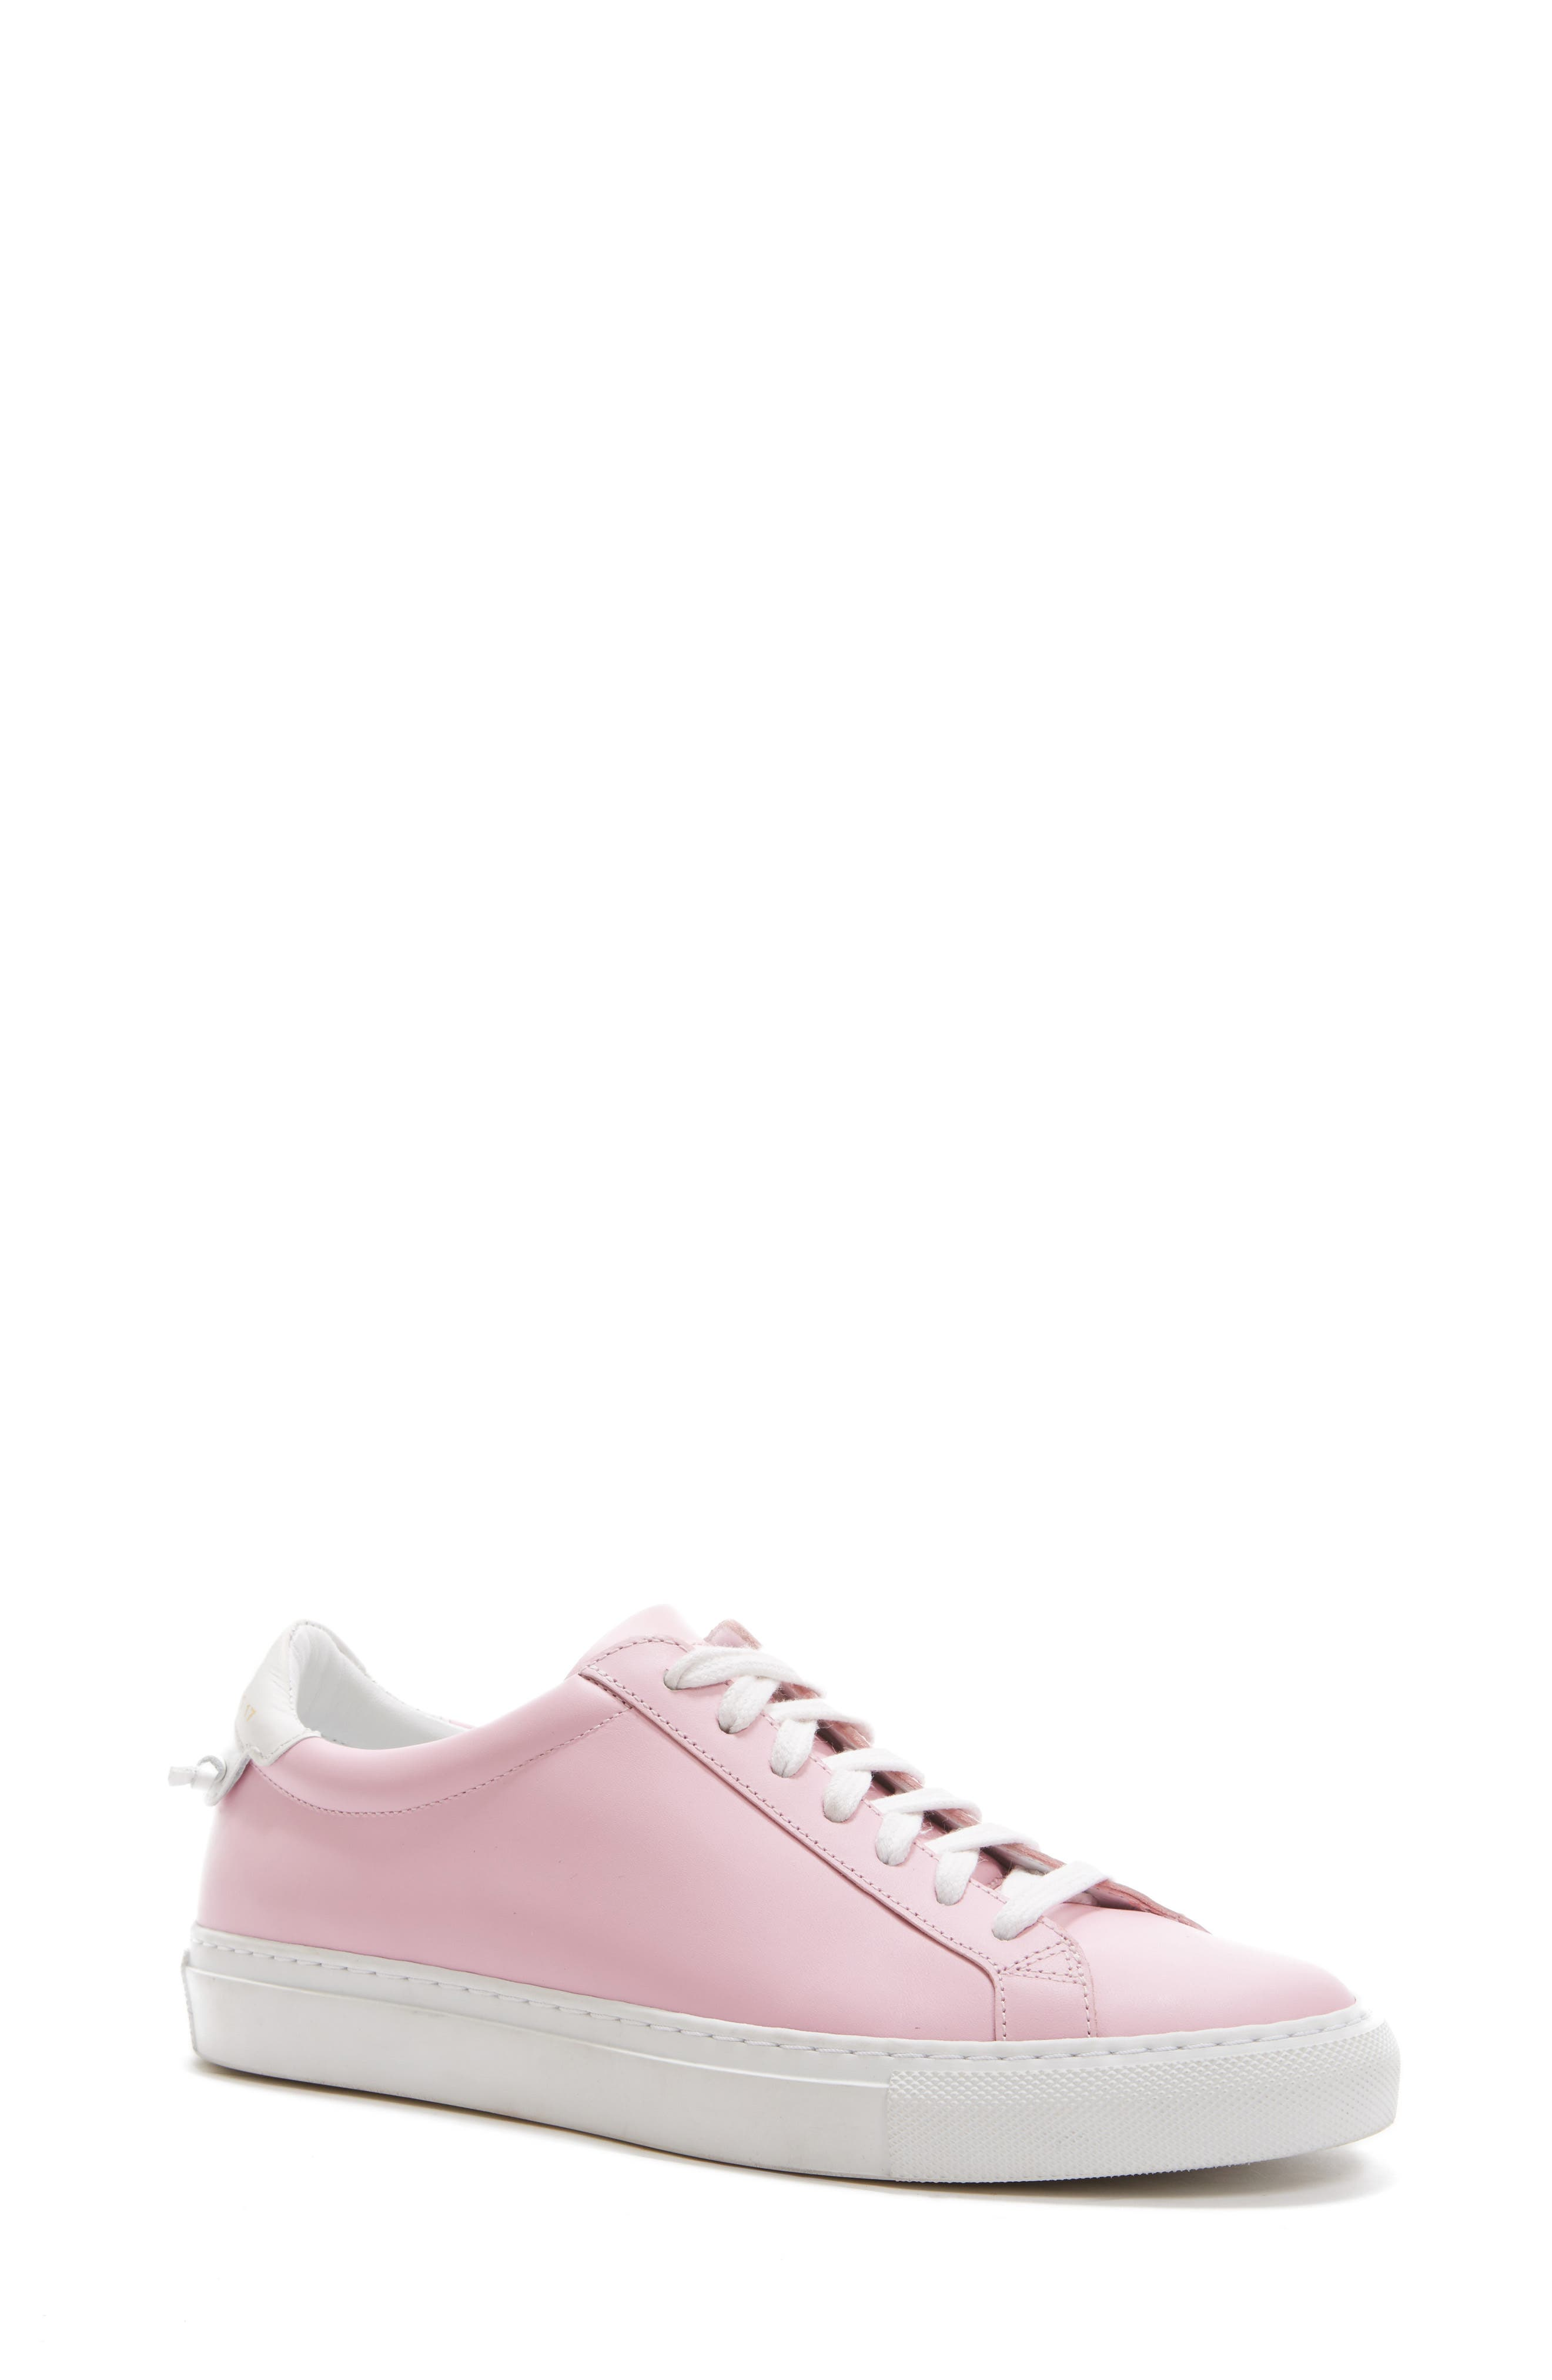 Givenchy Low Top Sneaker (Women)